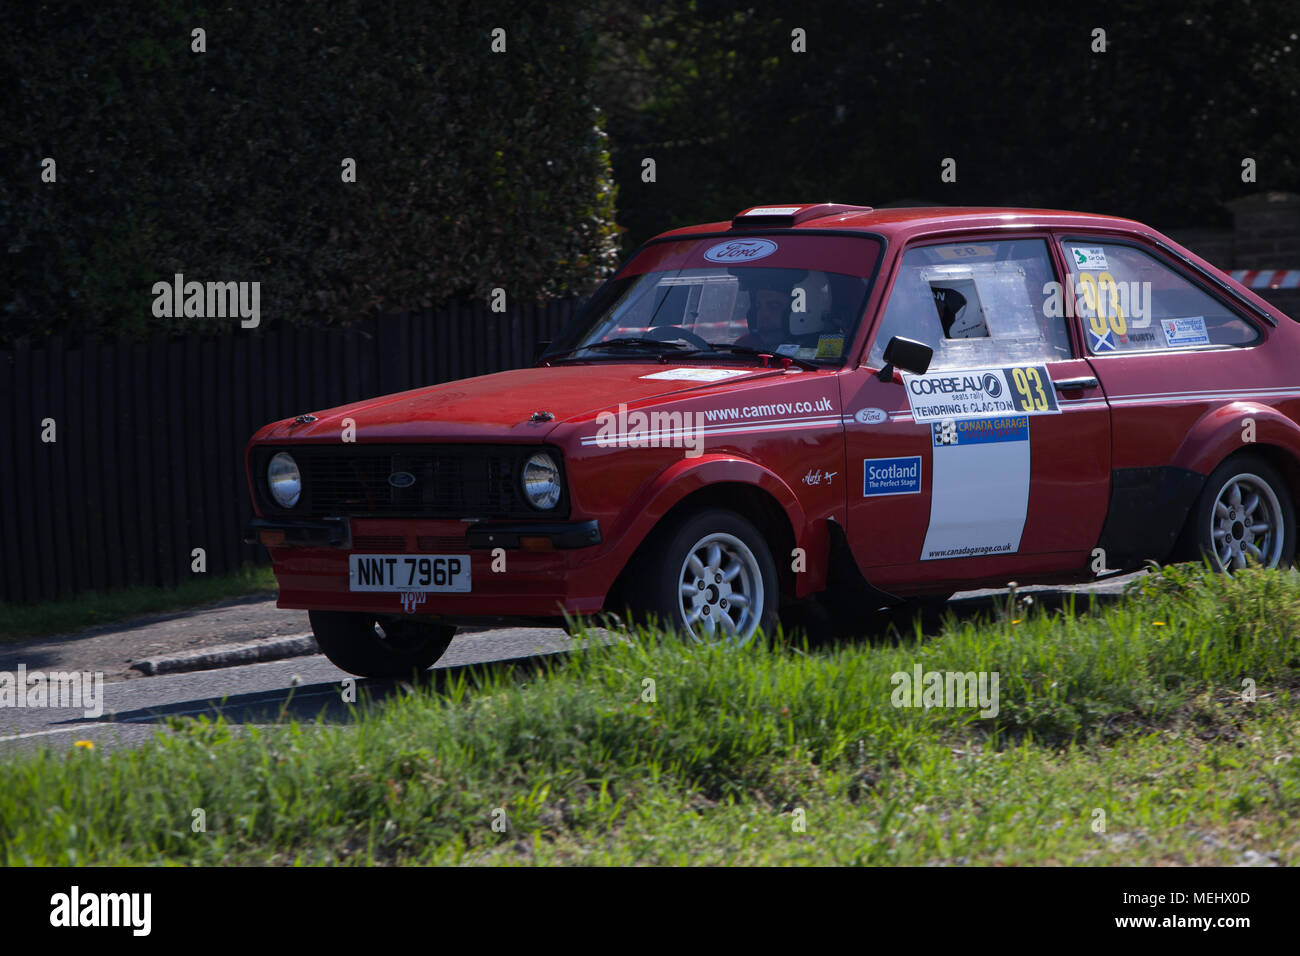 Road Rally Stock Photos & Road Rally Stock Images - Alamy